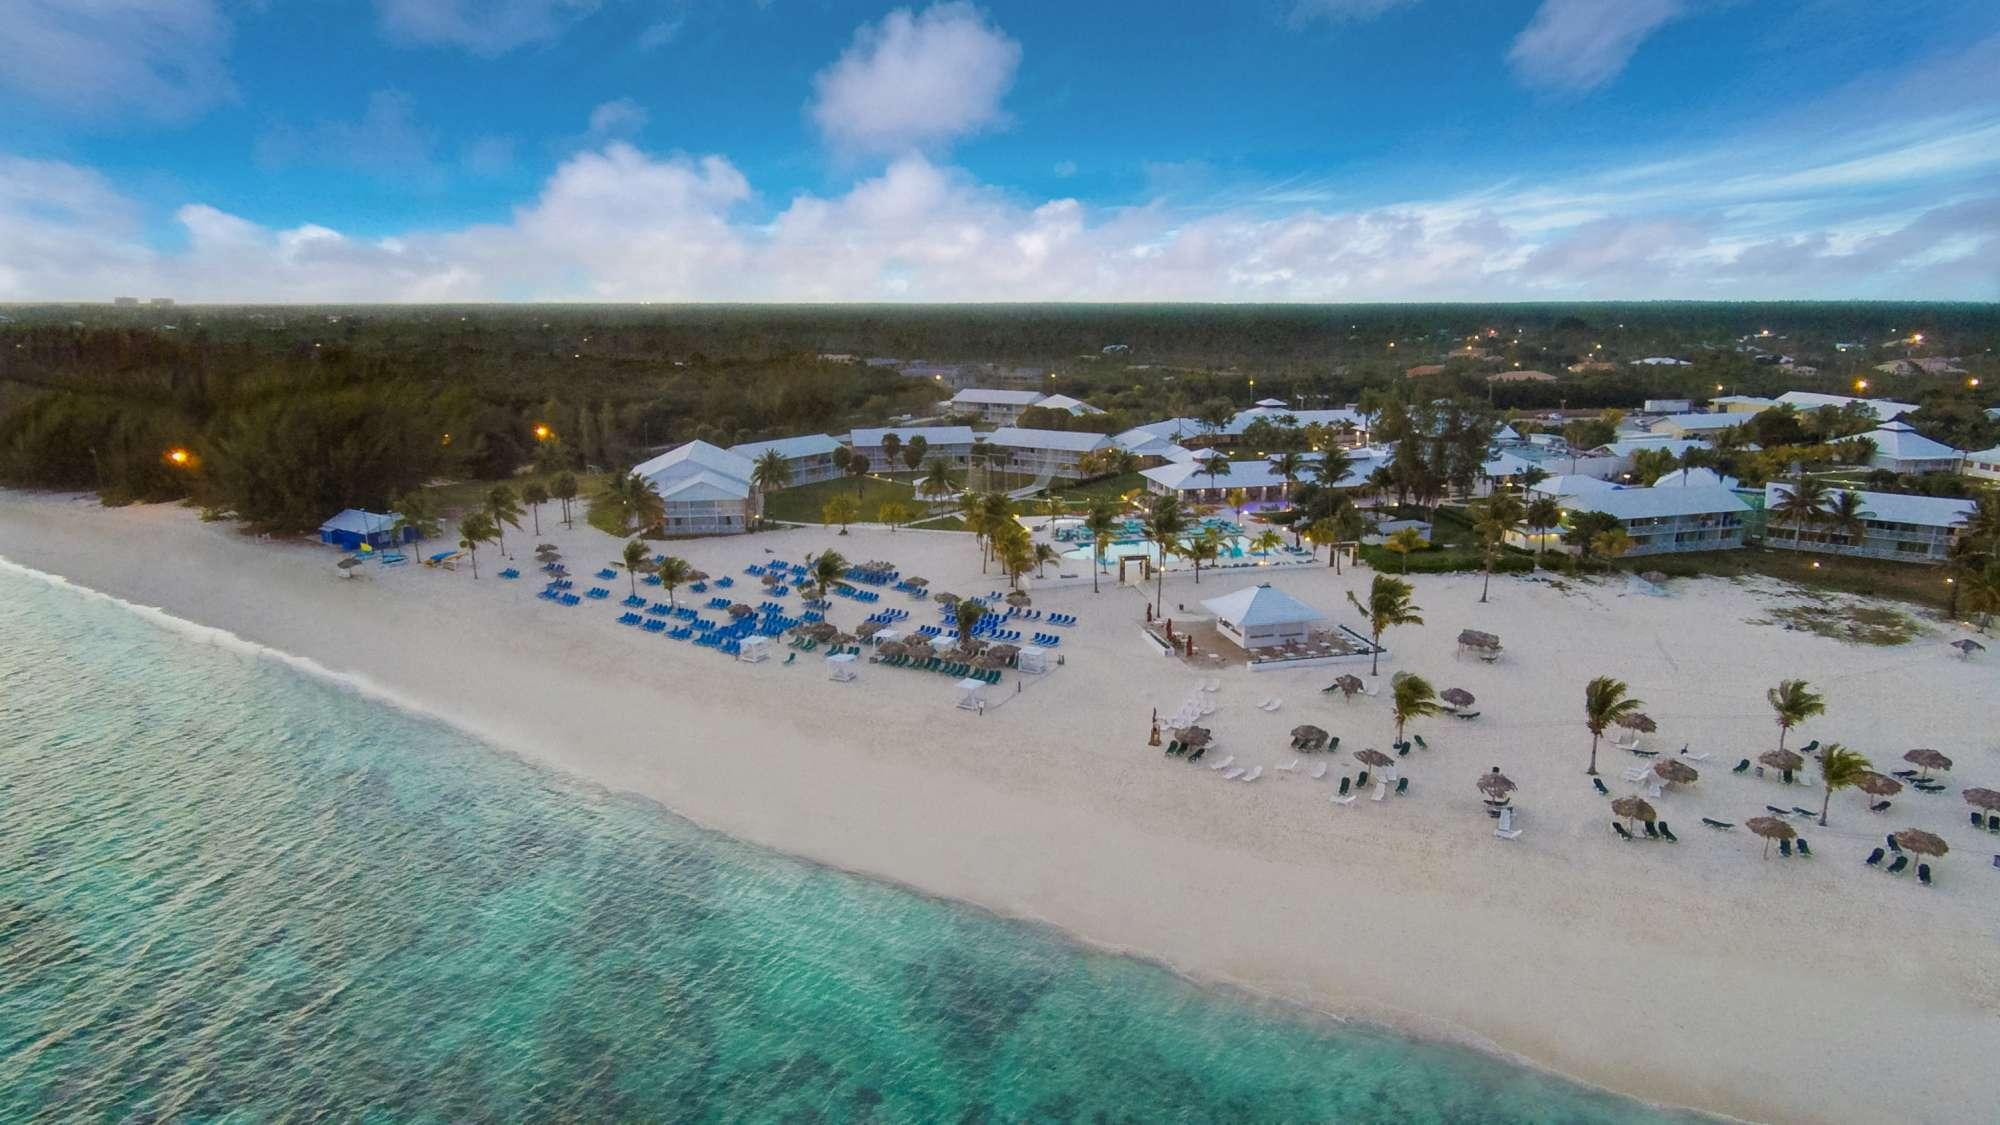 Grand Bahama, snorkeling nell oceano e relax su spiagge bianchissime